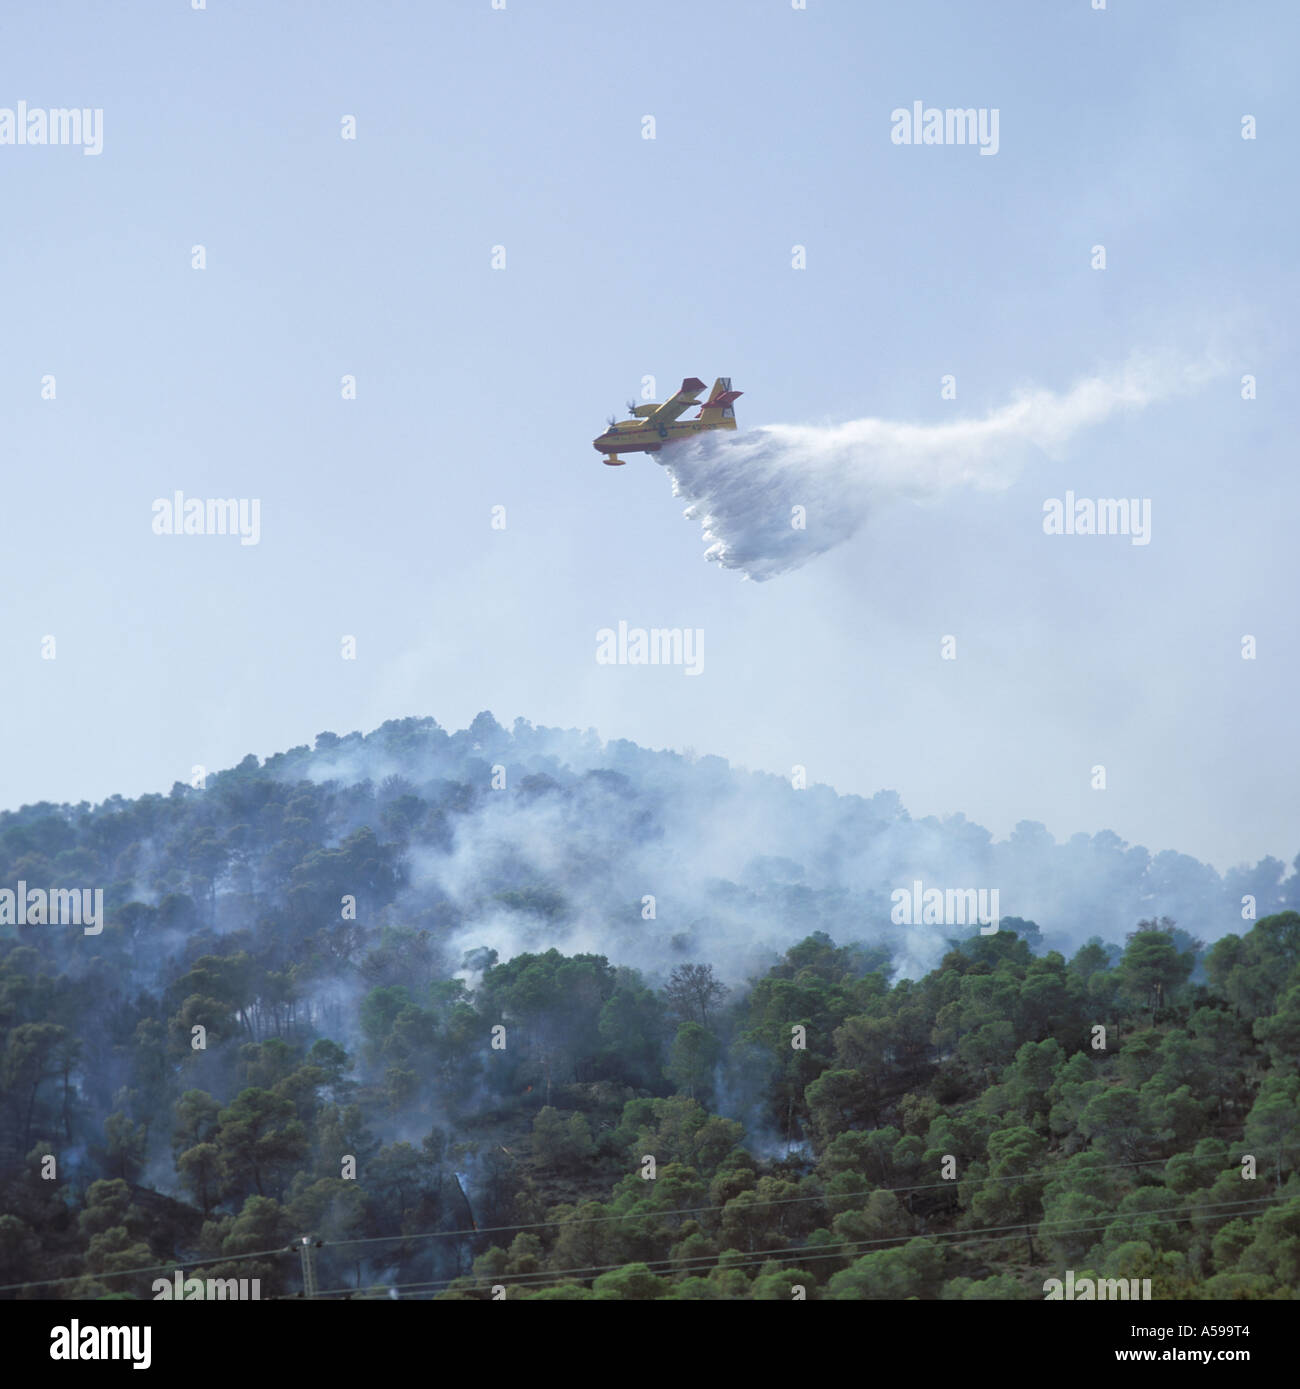 Canadair amphibious forest firefighting aircraft in operation at Paguera, Mallorca, Balearic Islands, Spain. - Stock Image